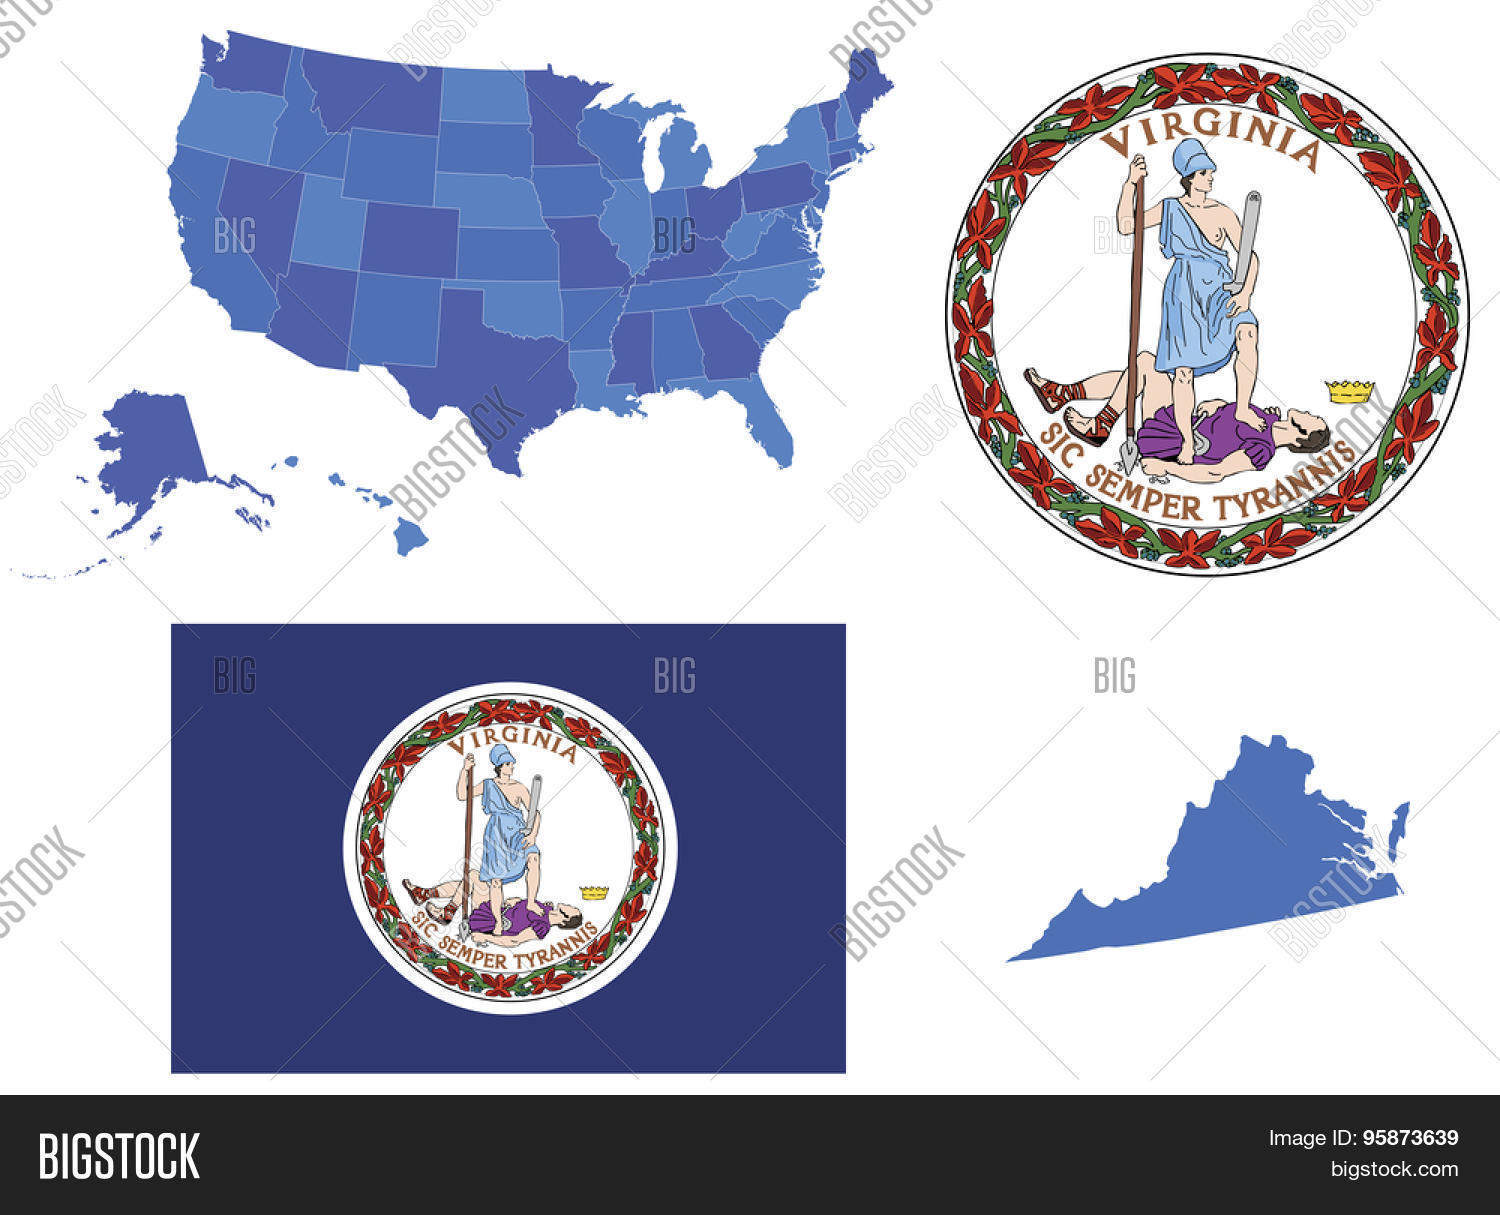 Vector Illustration Of Virginia State Contains High Detailed